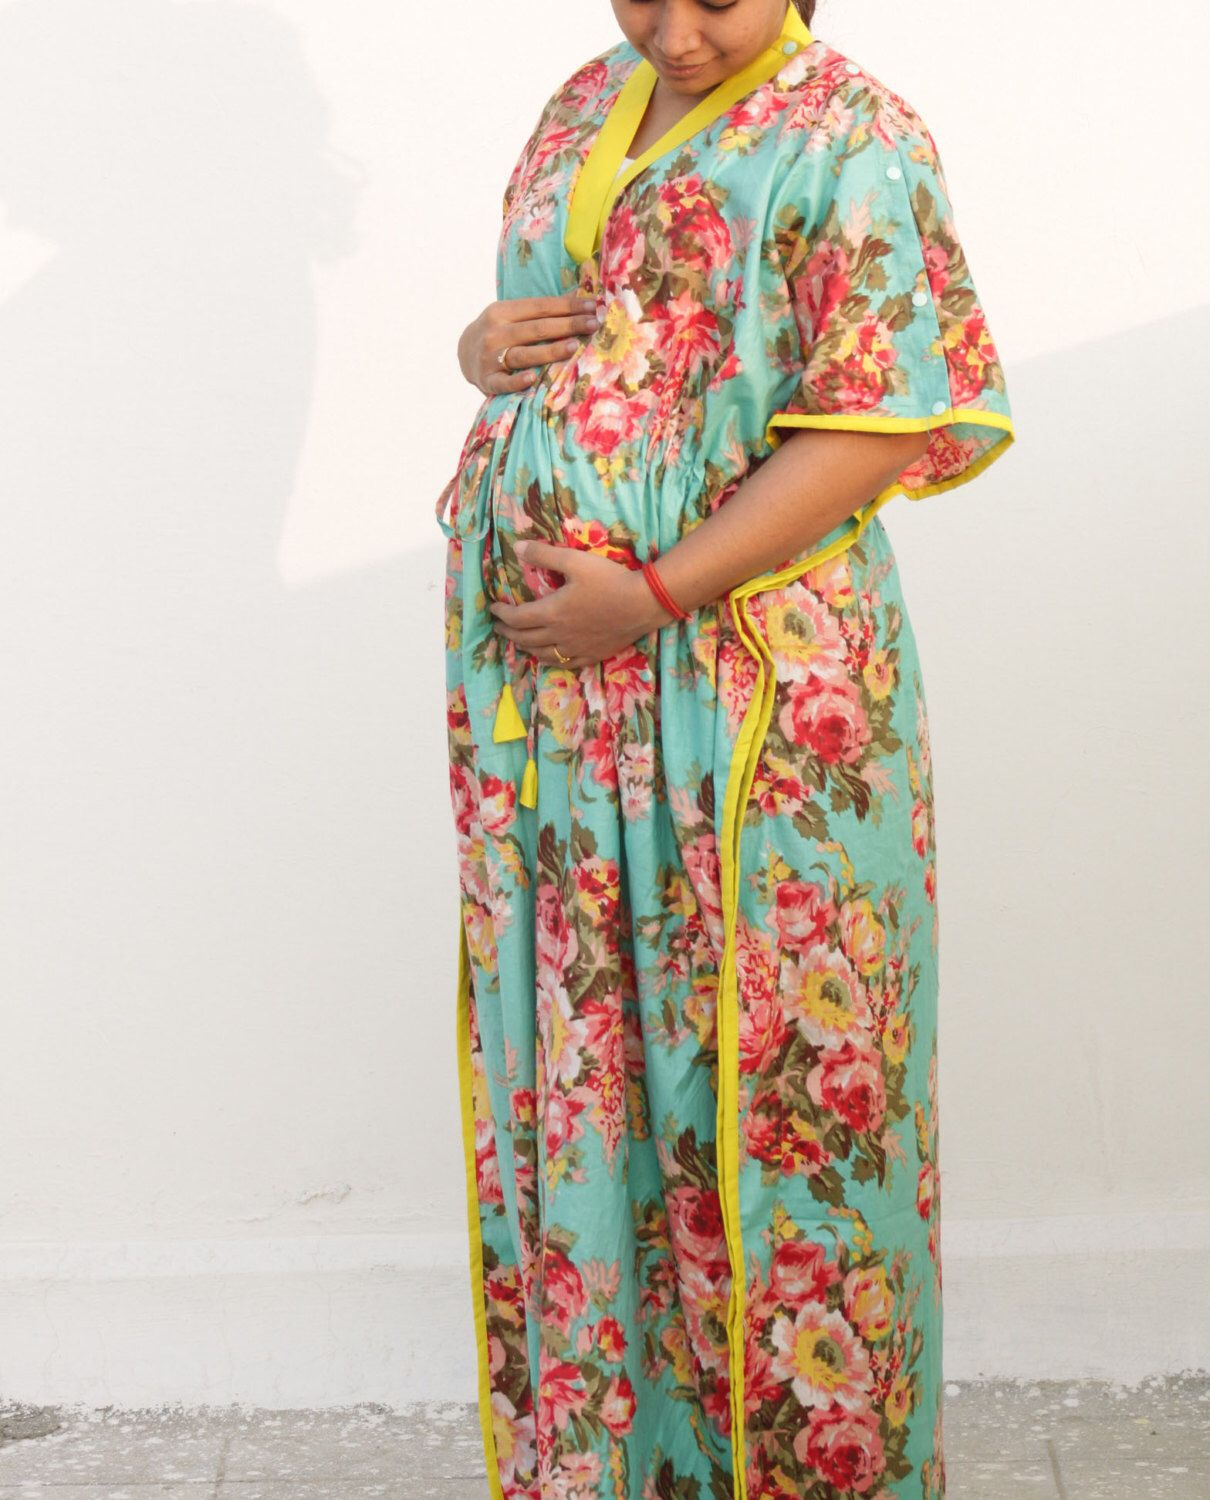 bc834fb497150 Maternity Clothing, Hospital Gown, Labor and Delivery, Nursing Gown, Nursing  Dress,